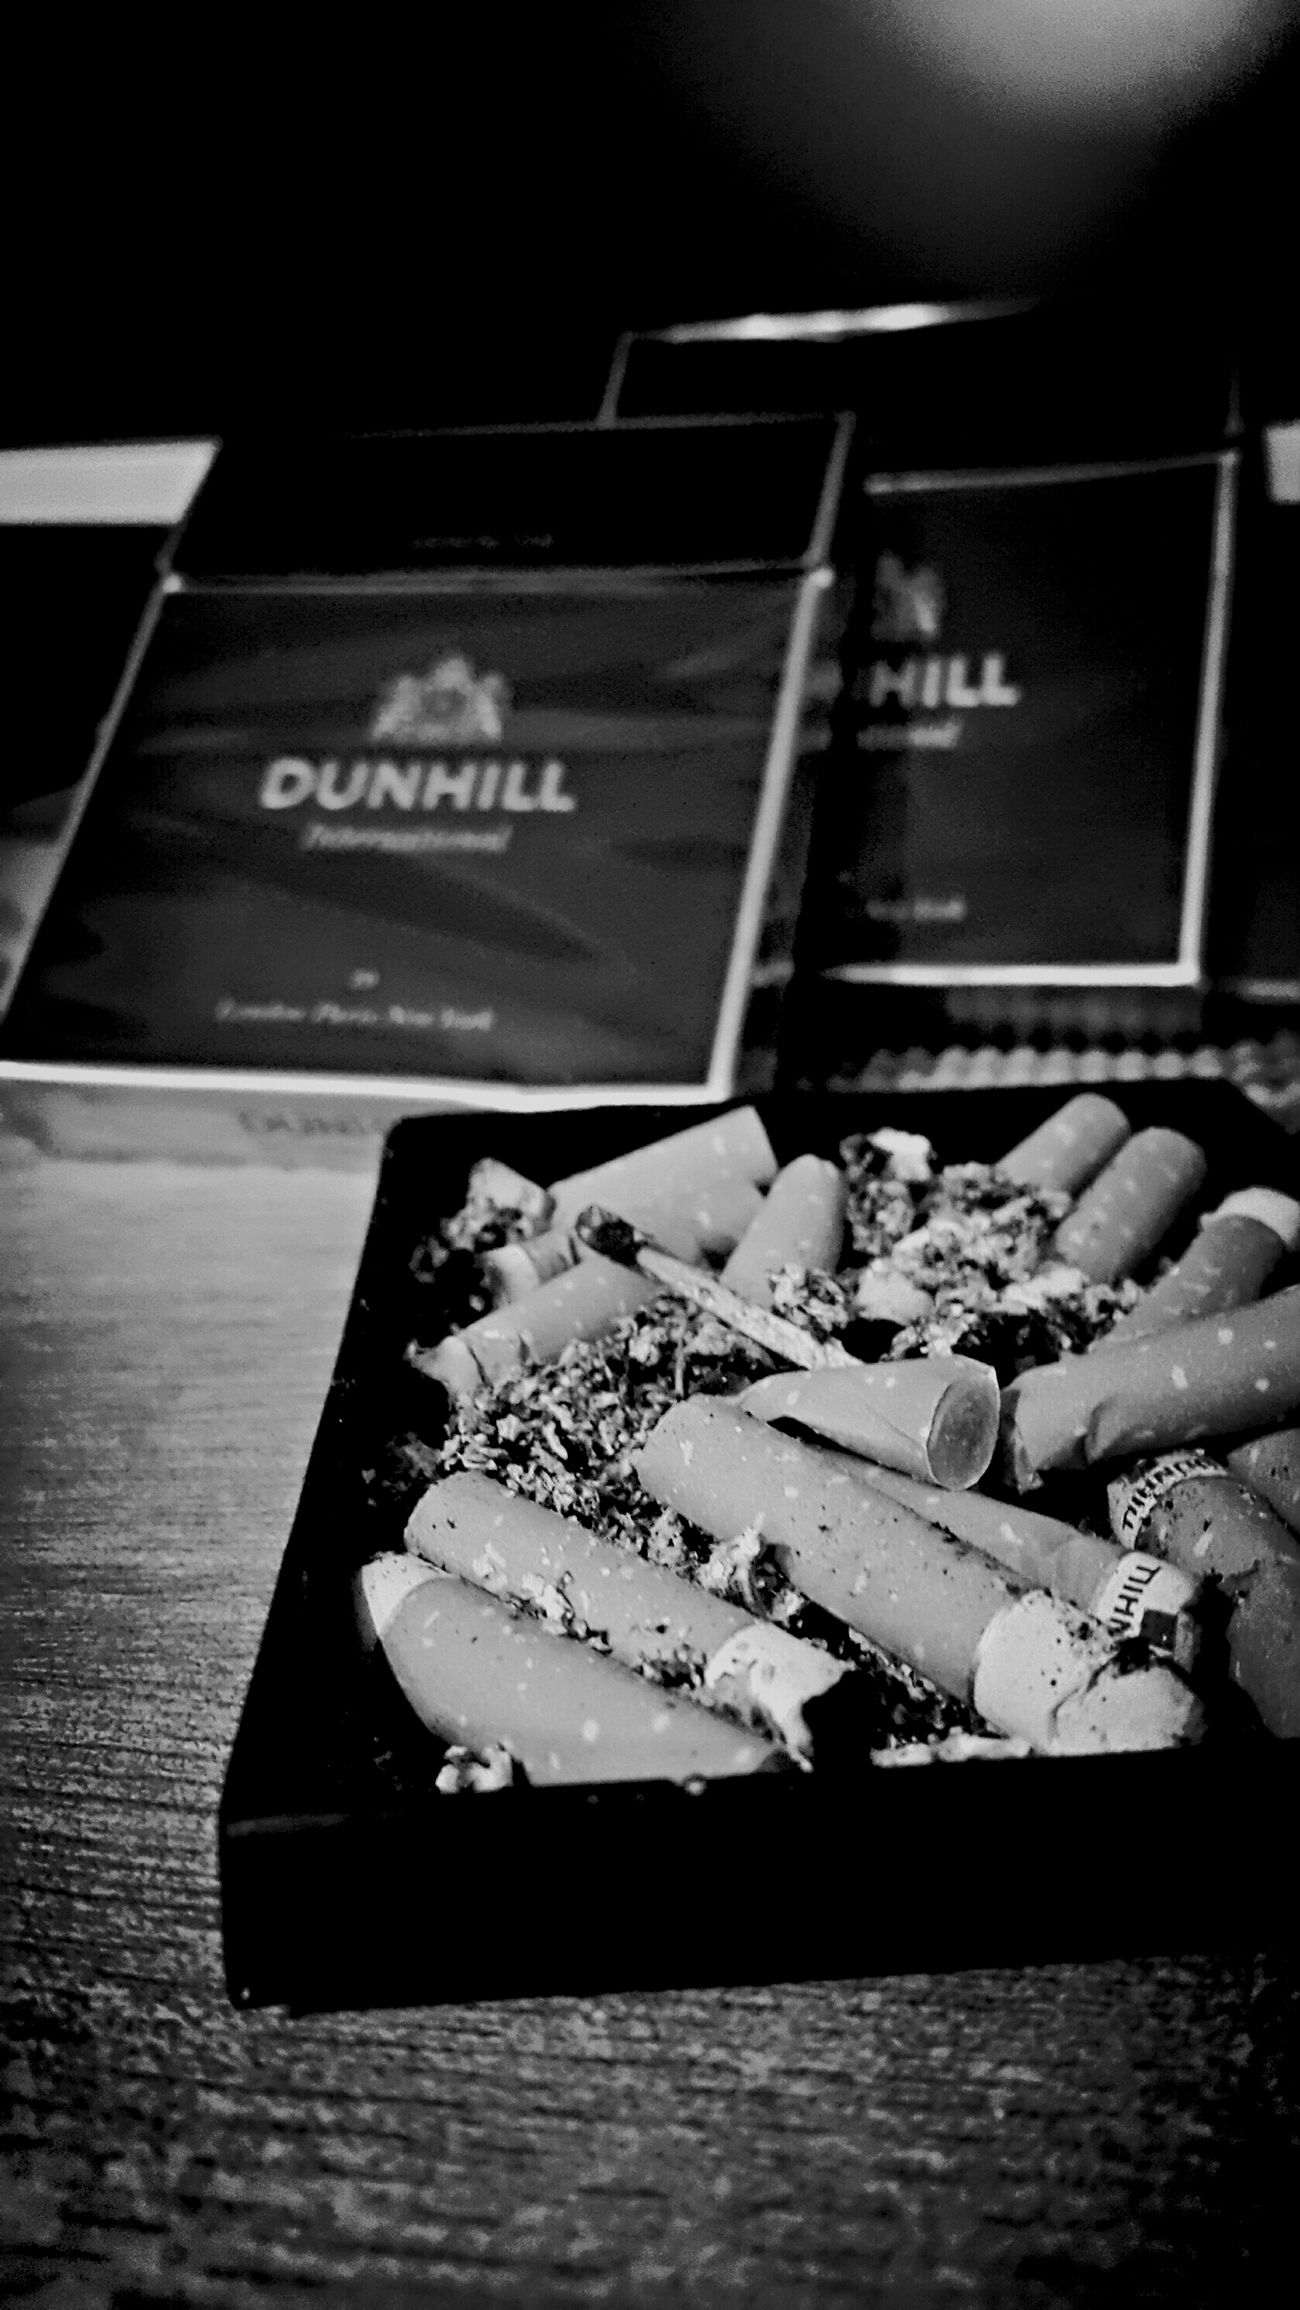 Ashes Dunhill Cigrettes Ash Tray